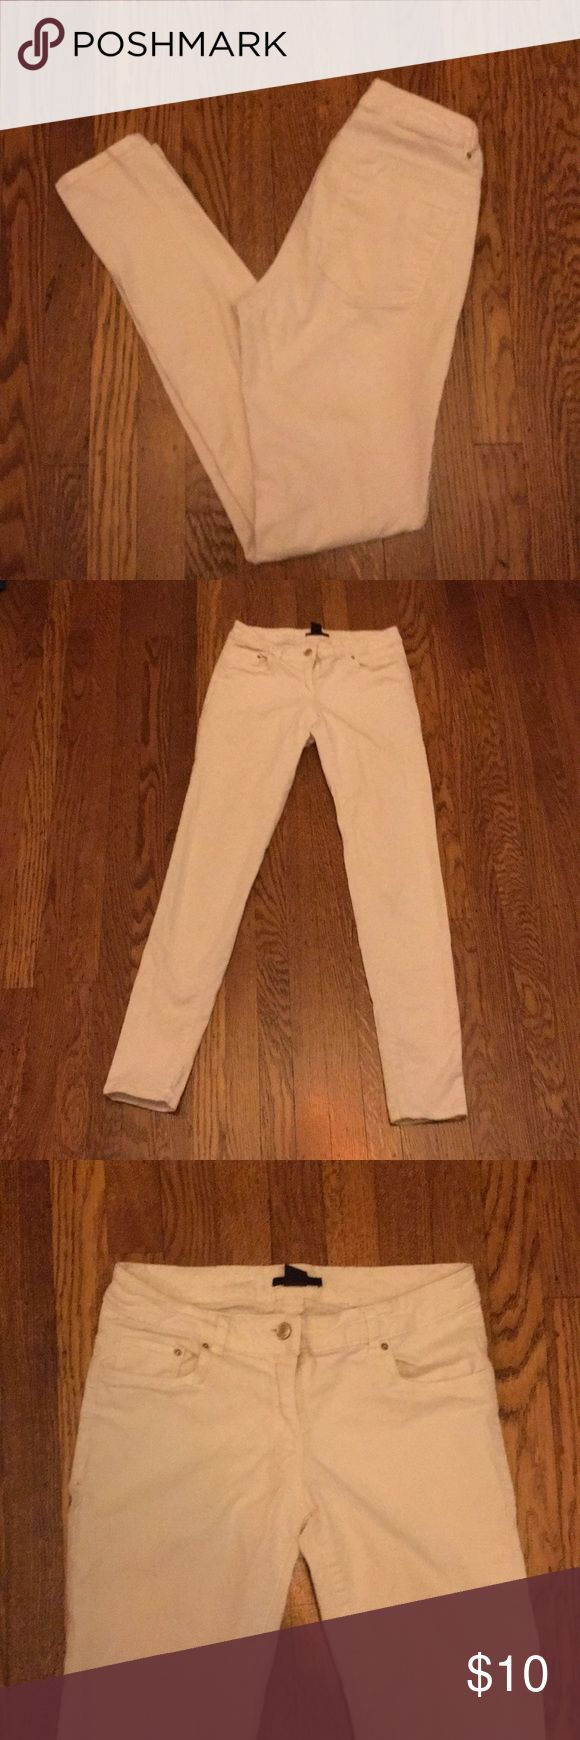 "H&M- white skinny jeans. Spot free size 8 jeans. H&M- white skinny jeans. Spot free size 8 jeans (weird H&M sizing) but really fits like a size 4-6. The inseam is 29"". H&M Jeans Skinny"